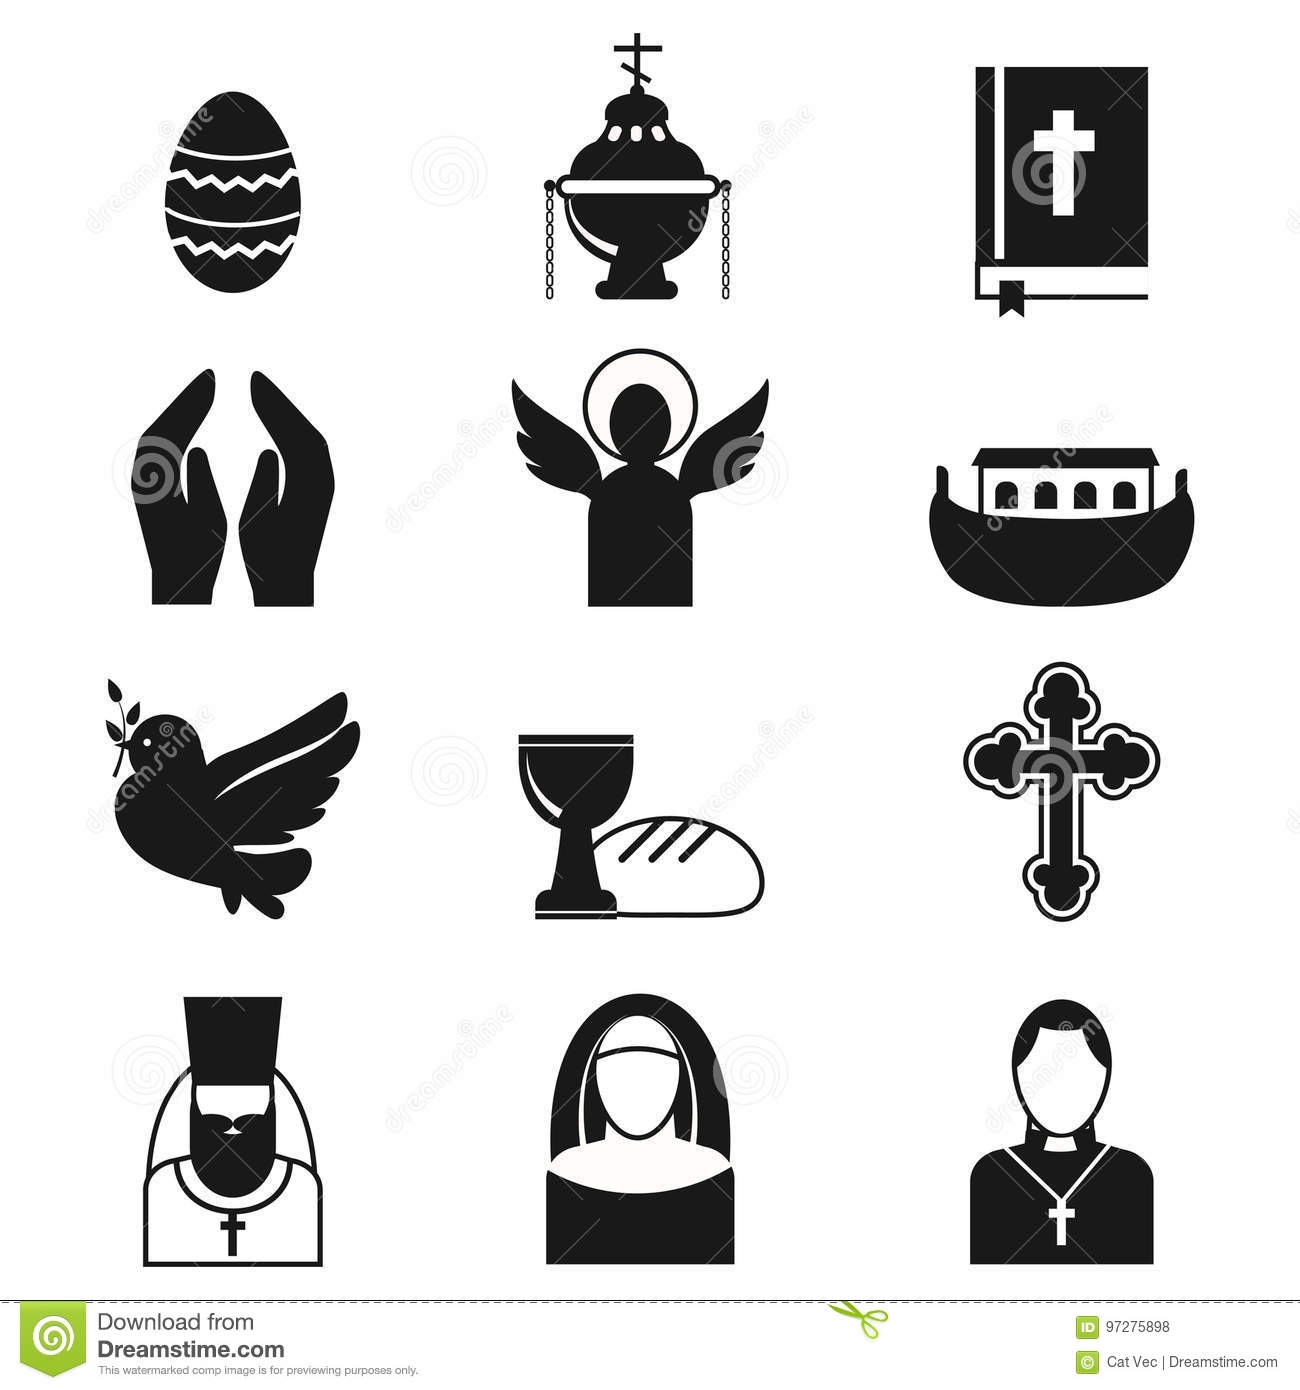 christianity religion flat icons vector illustration of traditional